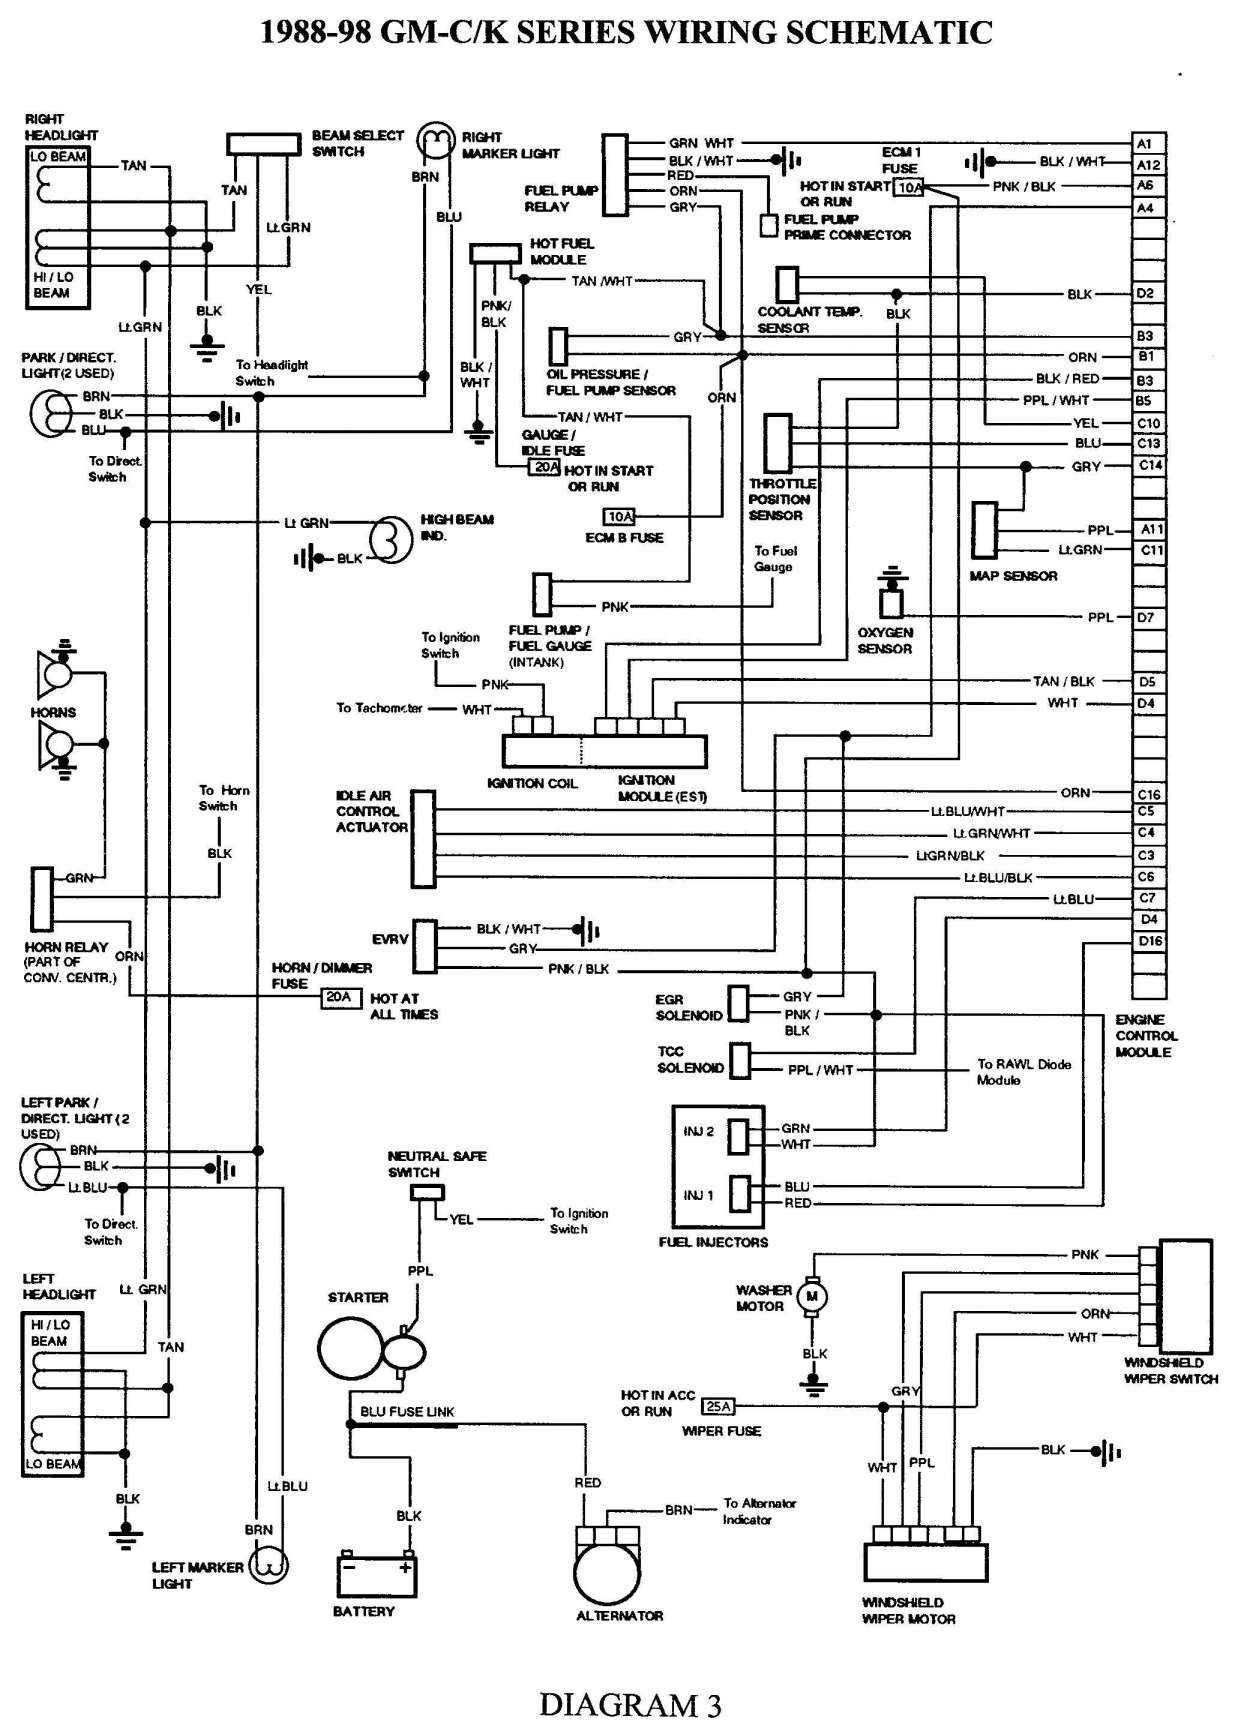 12 1988 Chevy Truck Wiring Diagram Truck Diagram Wiringg Net In 2020 Electrical Diagram Chevy 1500 Electrical Wiring Diagram